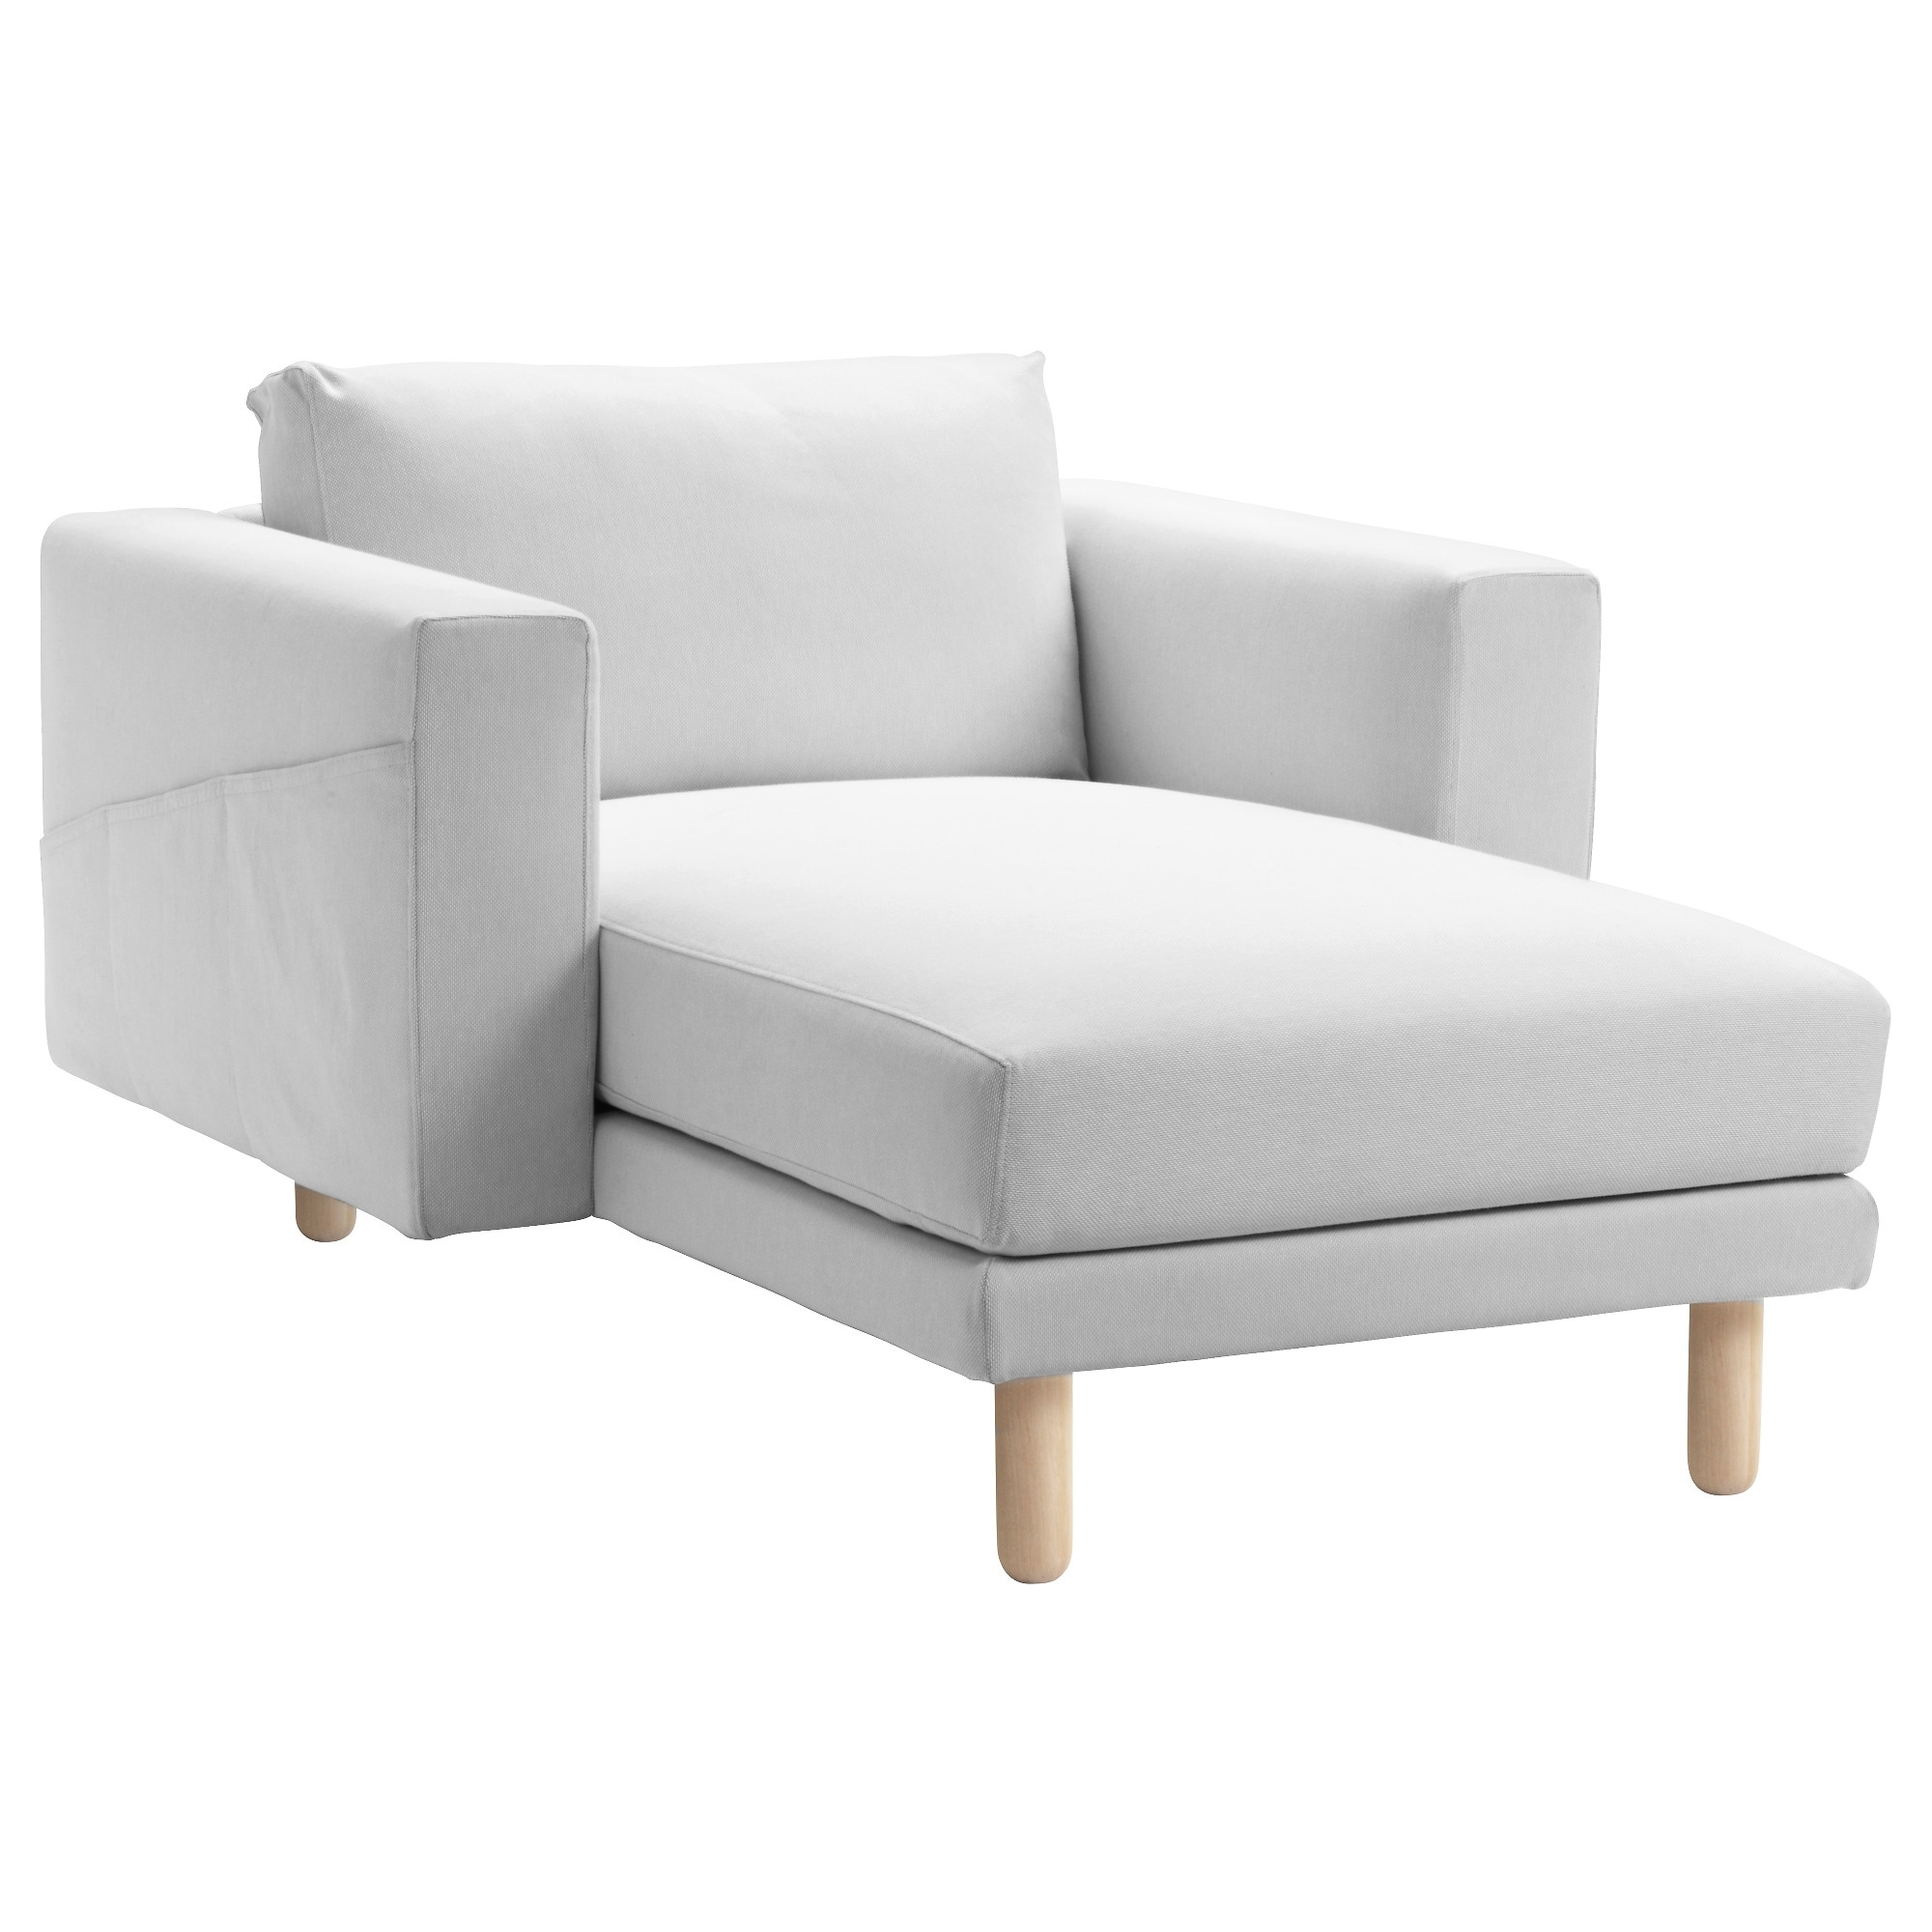 Most Recent Ikea Chaise Longues Throughout Norsborg Cover For Chaise Longue Finnsta White – Ikea (View 9 of 15)